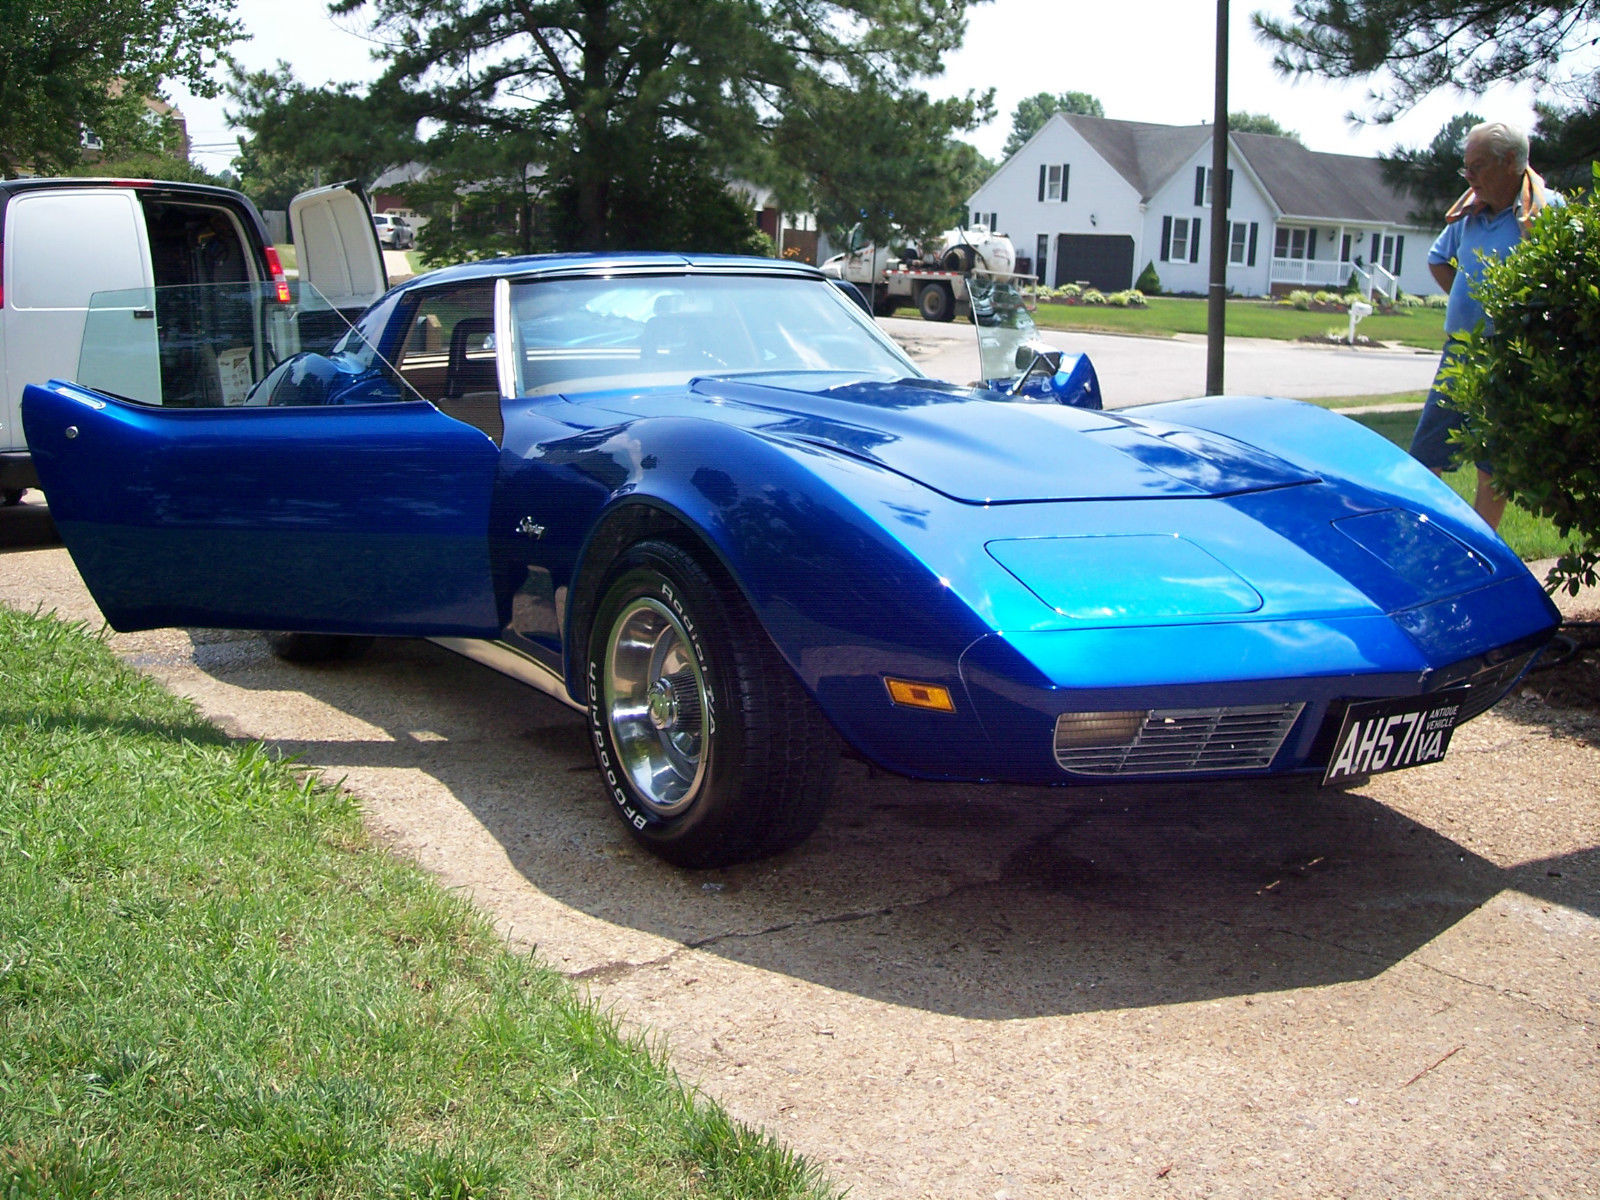 T Top Cars >> 1973 Chevrolet Corvette Stingray T-Top / Built 350 Motor / Garage Kept - Classic Chevrolet ...